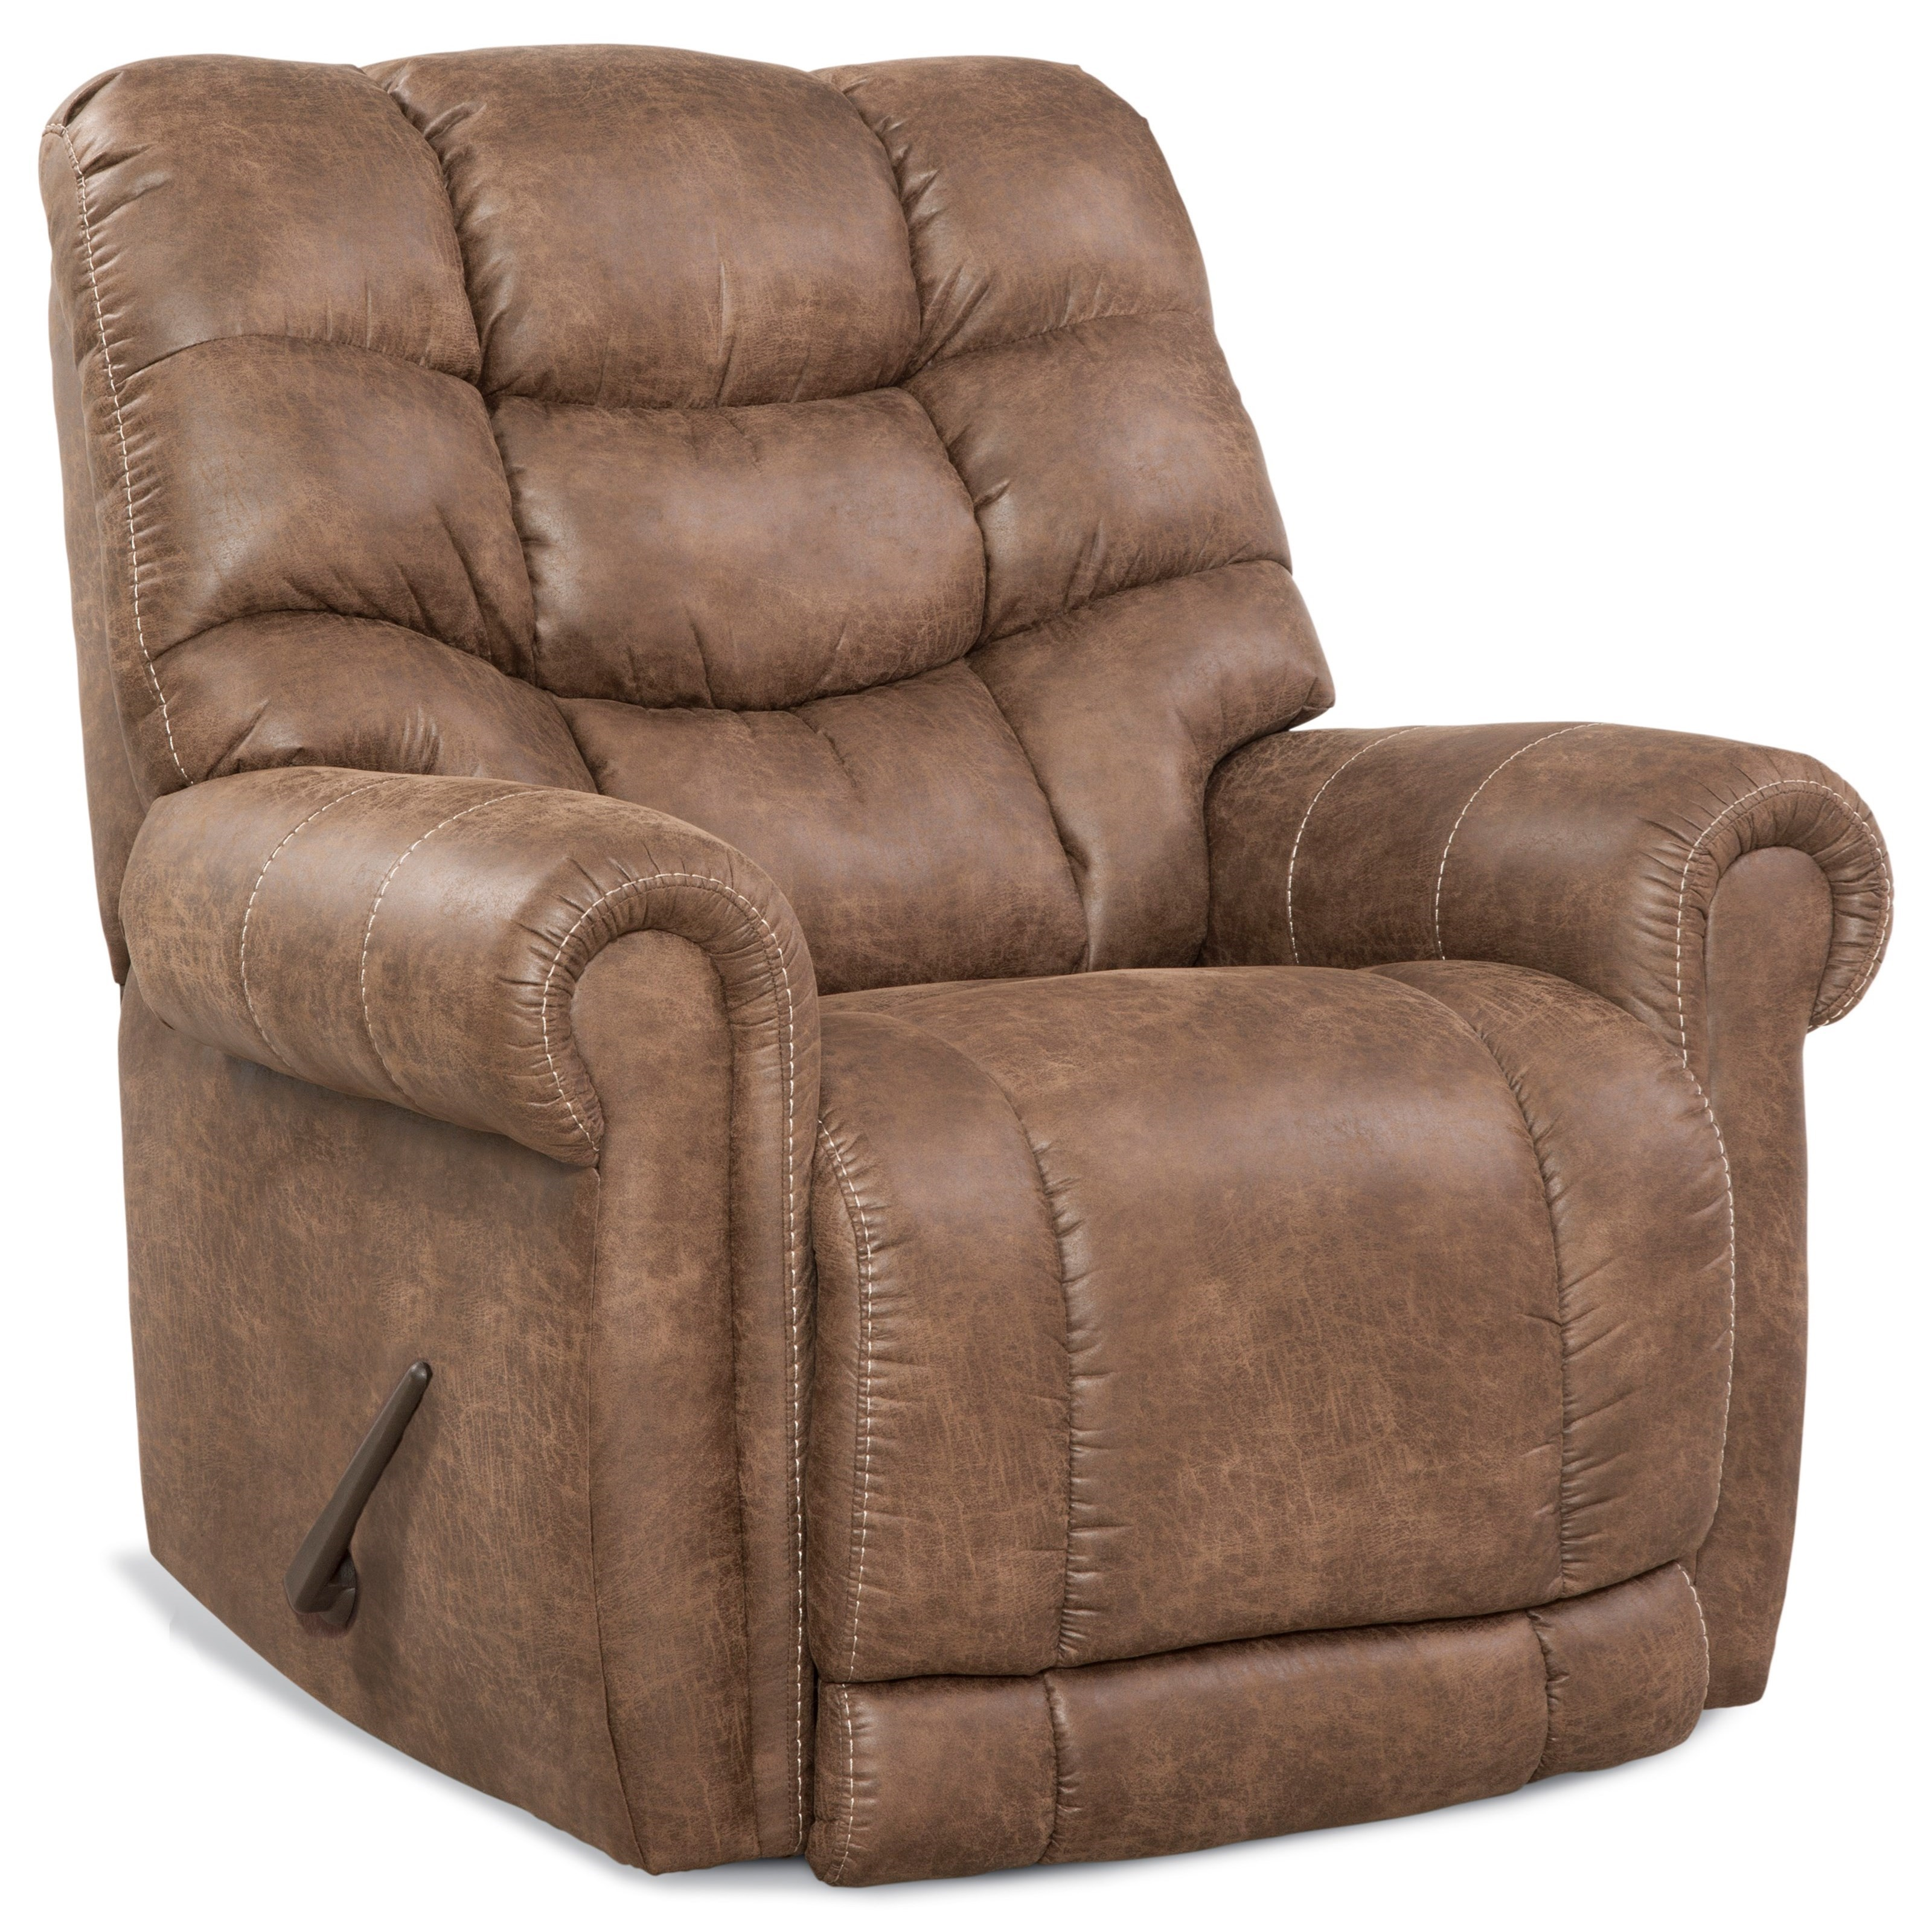 ip country oak and recliner mossy walmart big tall up chair break com